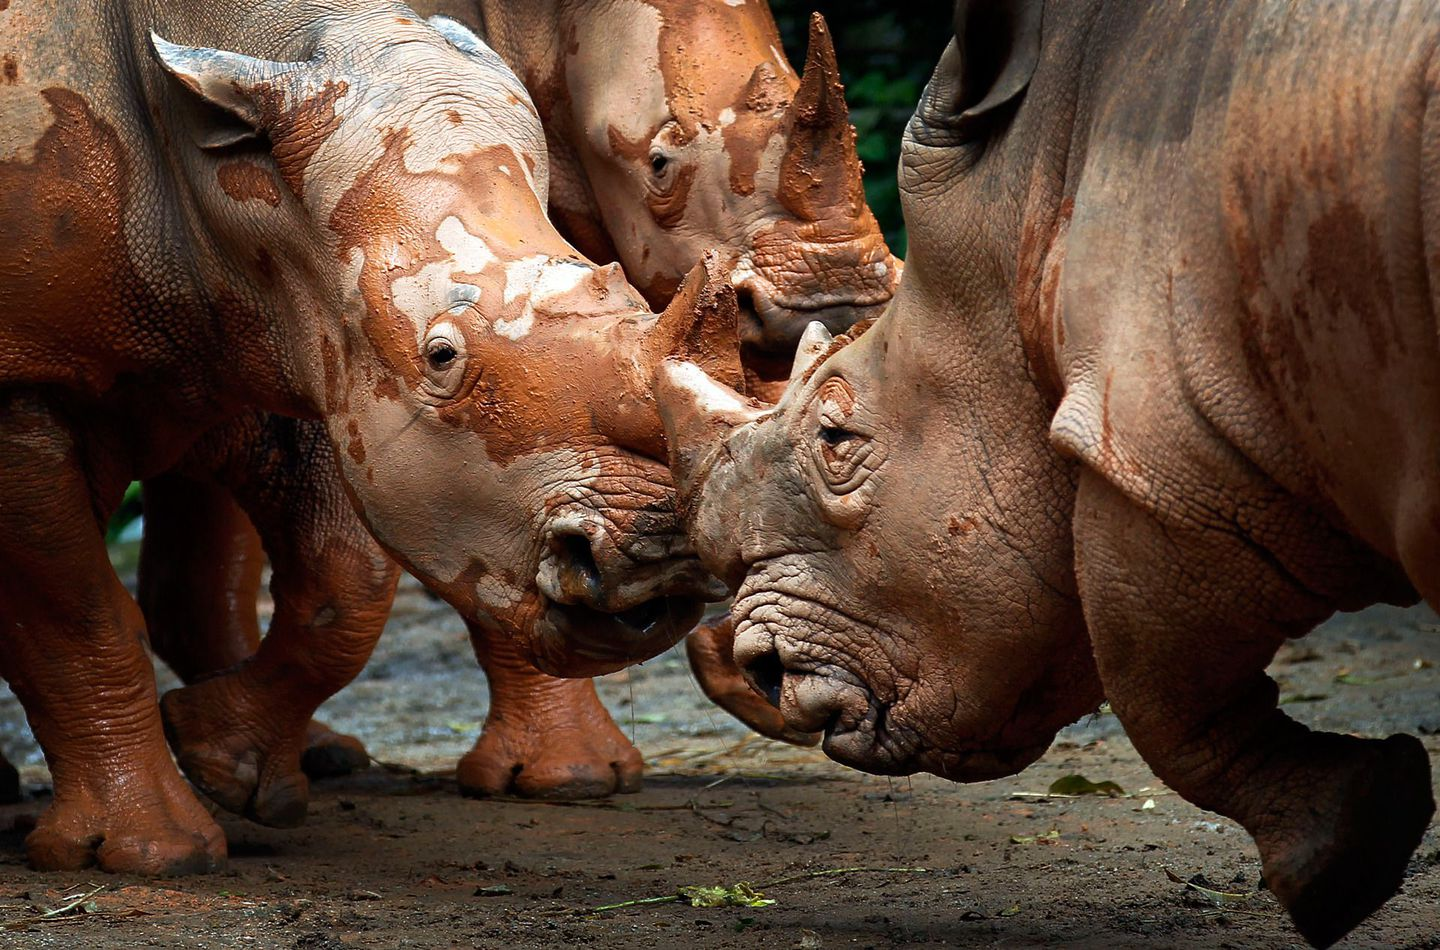 Mud-covered African Southern Rhinos face-off at the Singapore Zoo on July 17, 2012.  IMAGE: WONG MAYE-E/ASSOCIATED PRESS